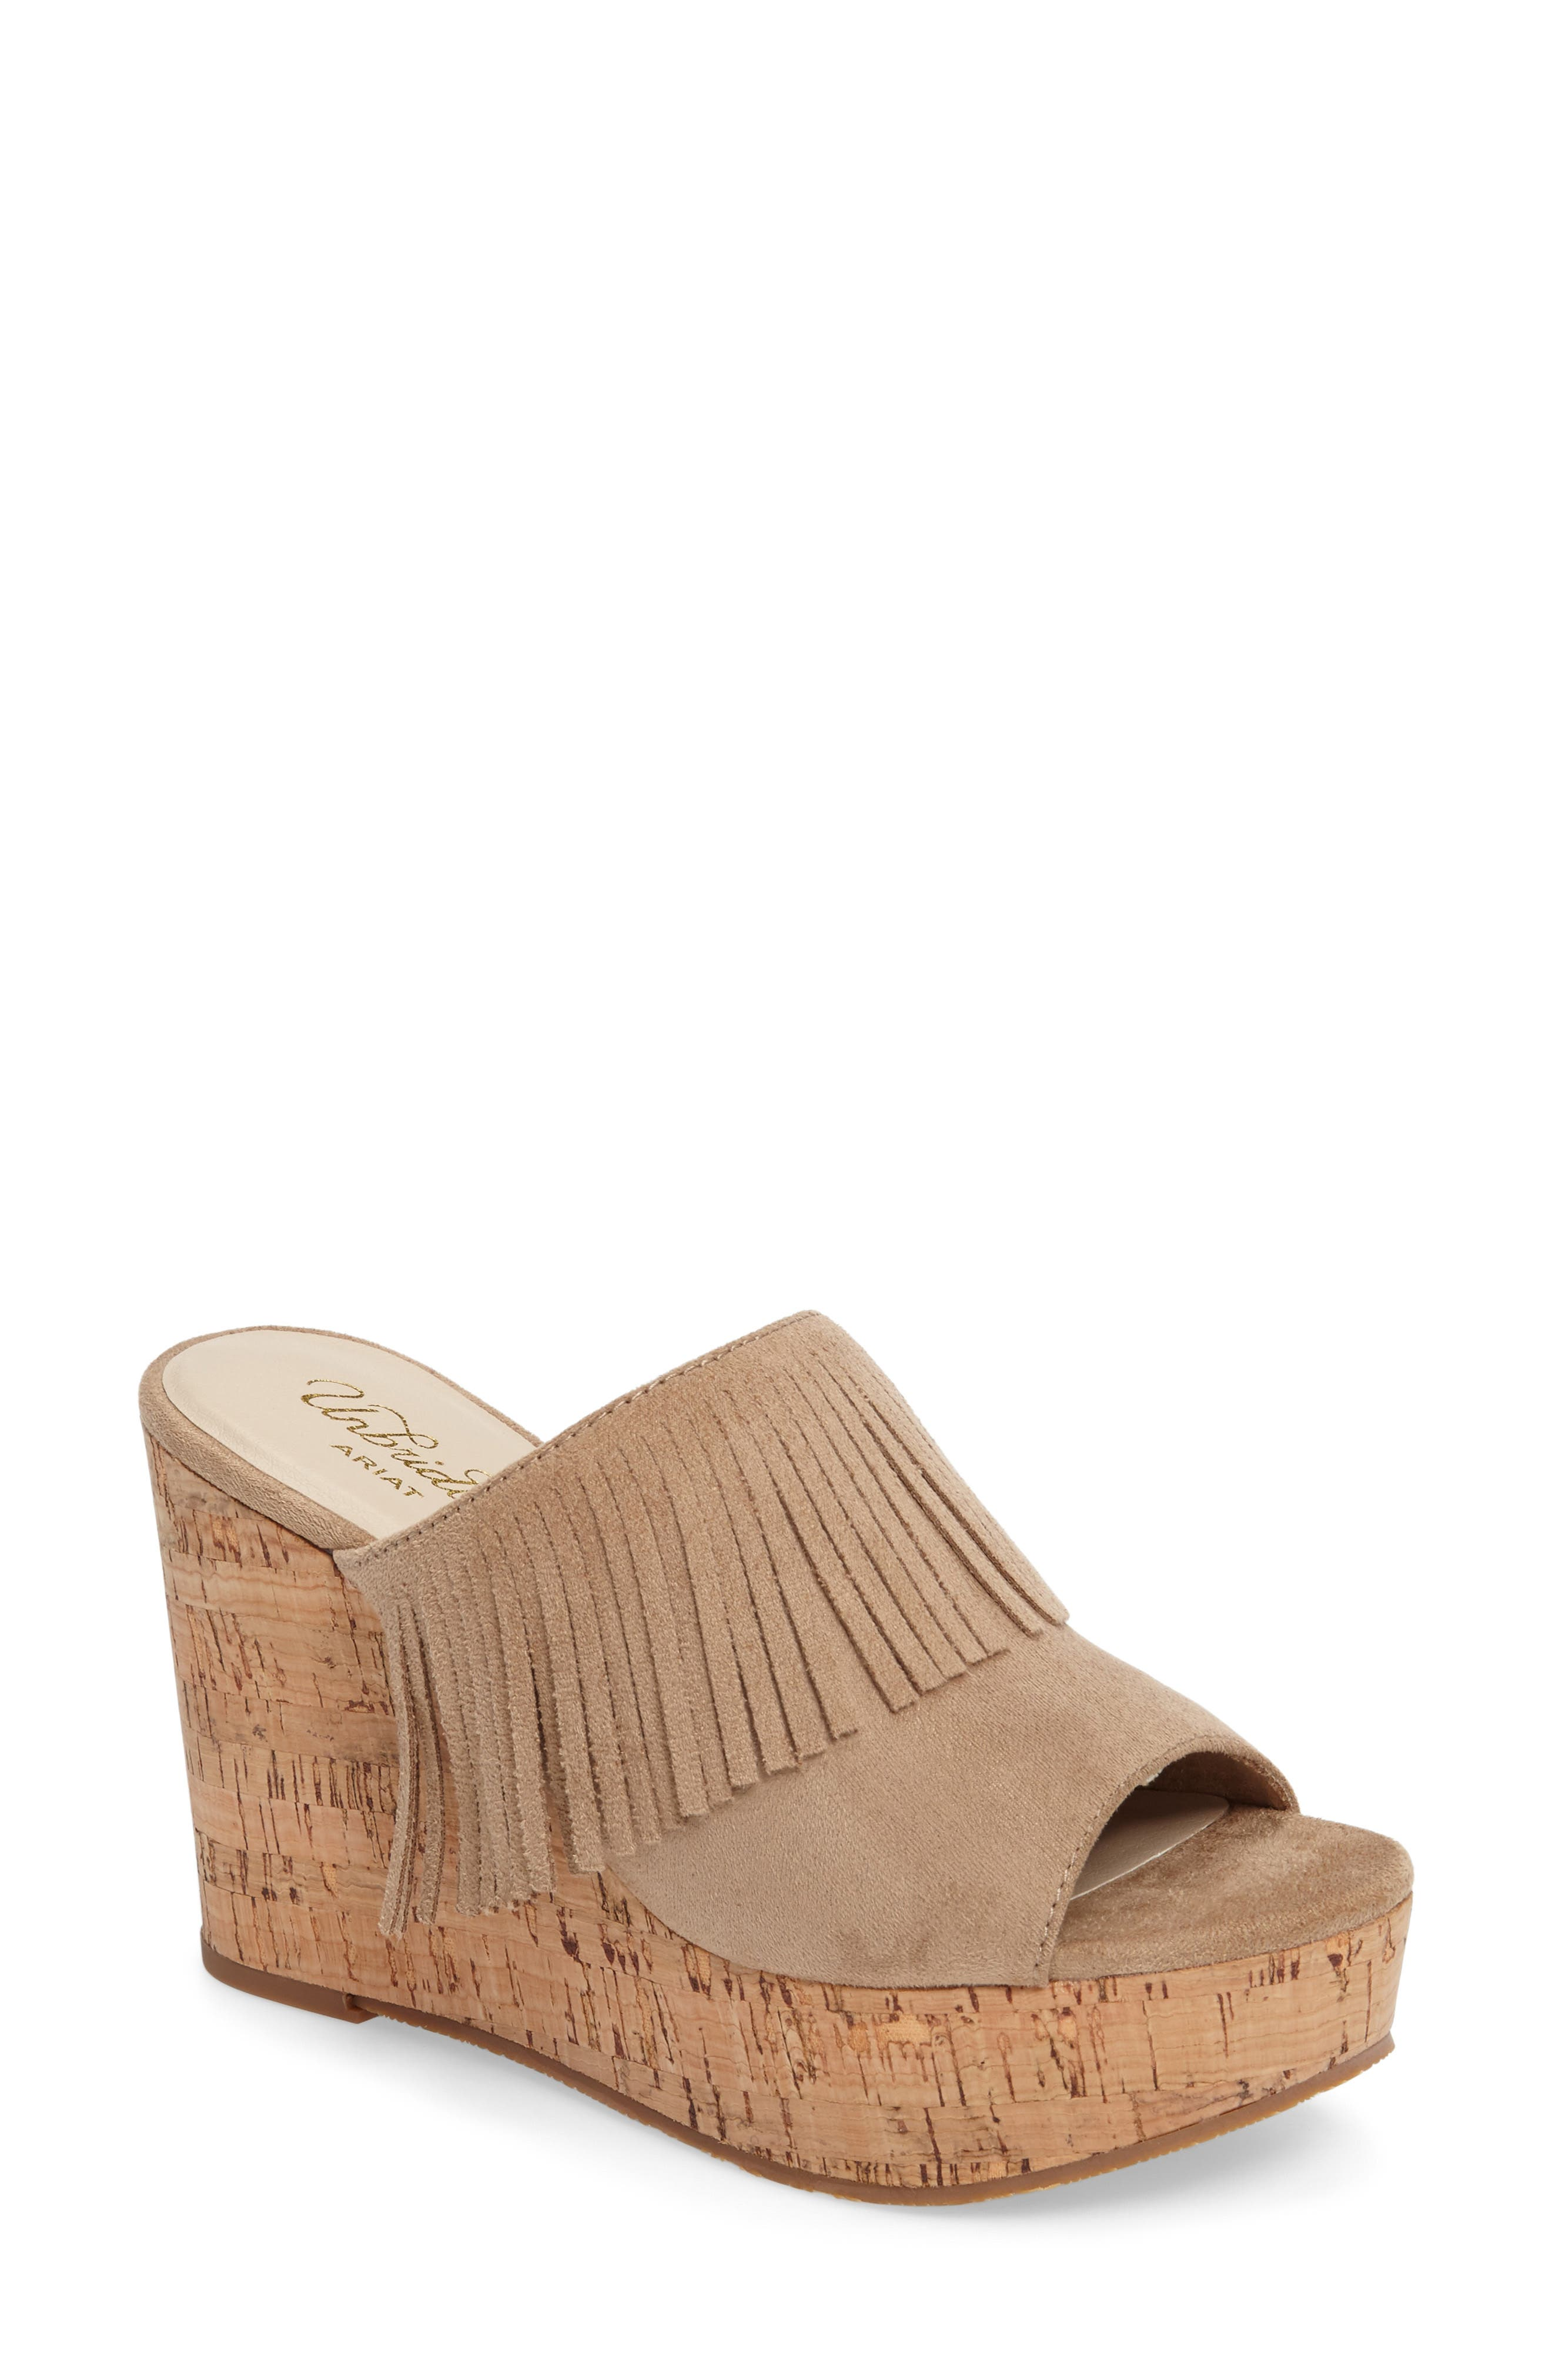 Alternate Image 1 Selected - Ariat Unbridled Leigh Fringe Mule (Women)